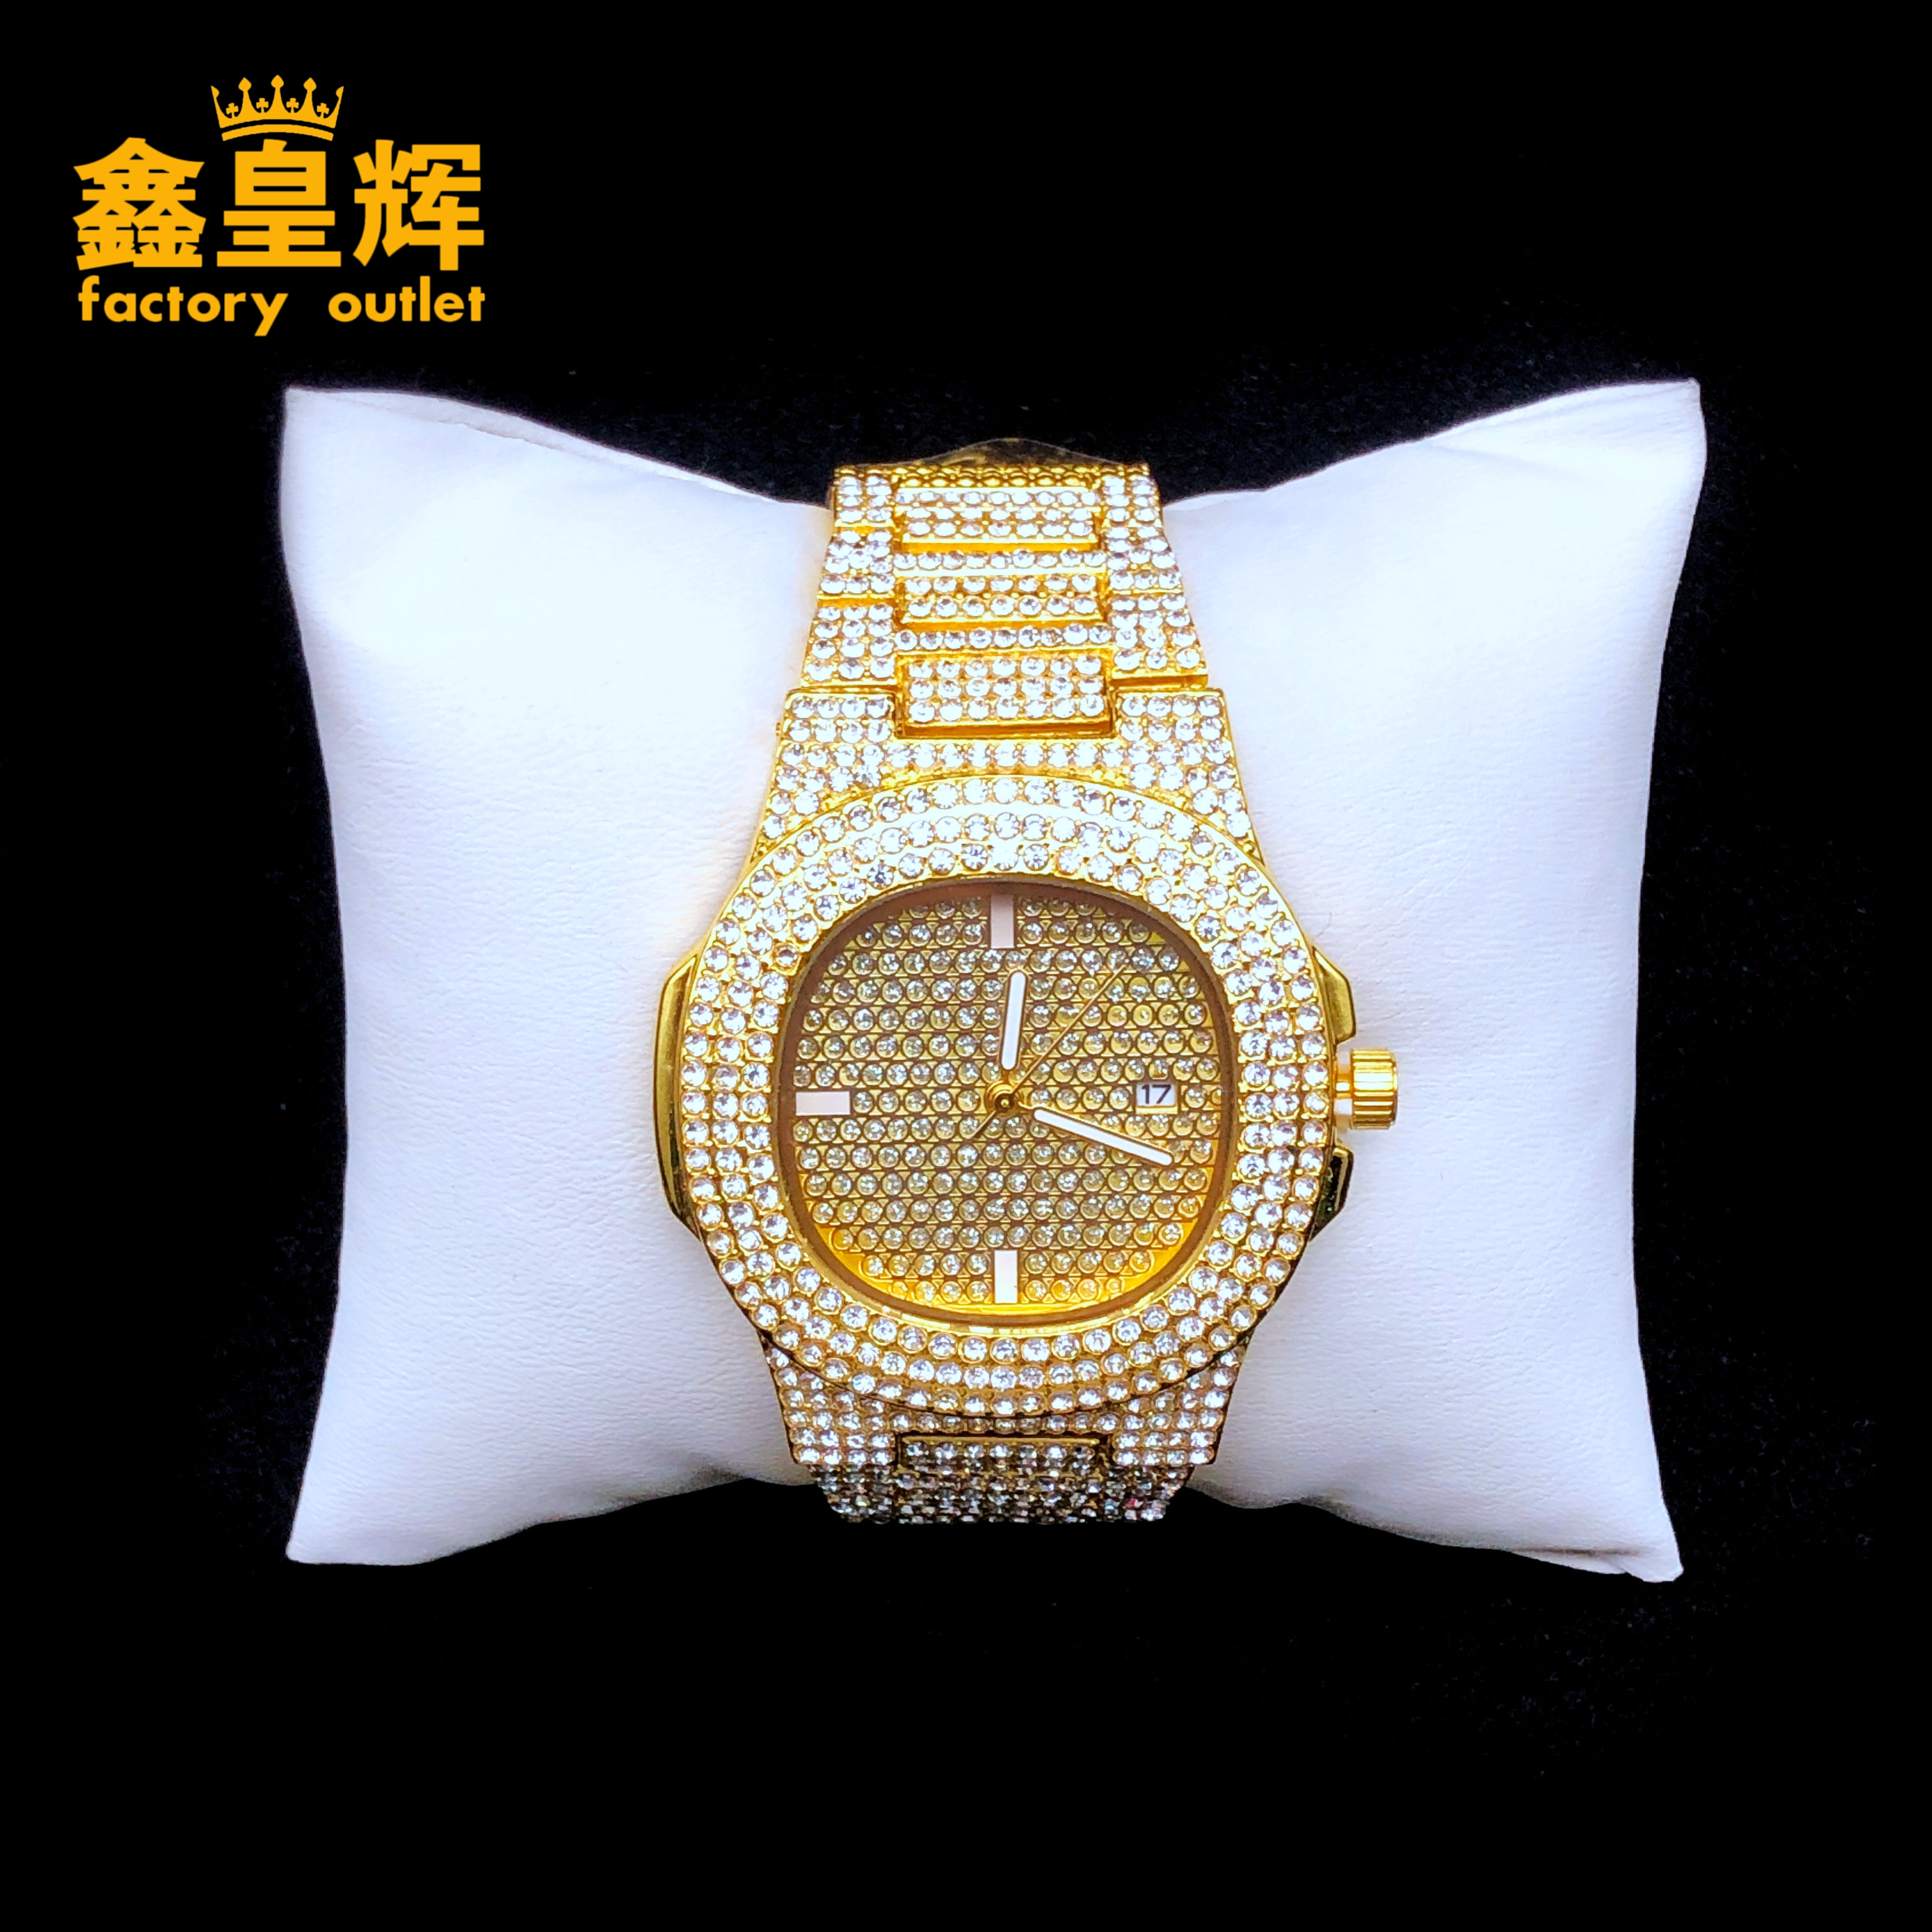 Luxury Hip Hop Fashion Men's And Women's Silver Diamond Watch  Accessories Diamond Gold And Silver Two Color Watch Accessories